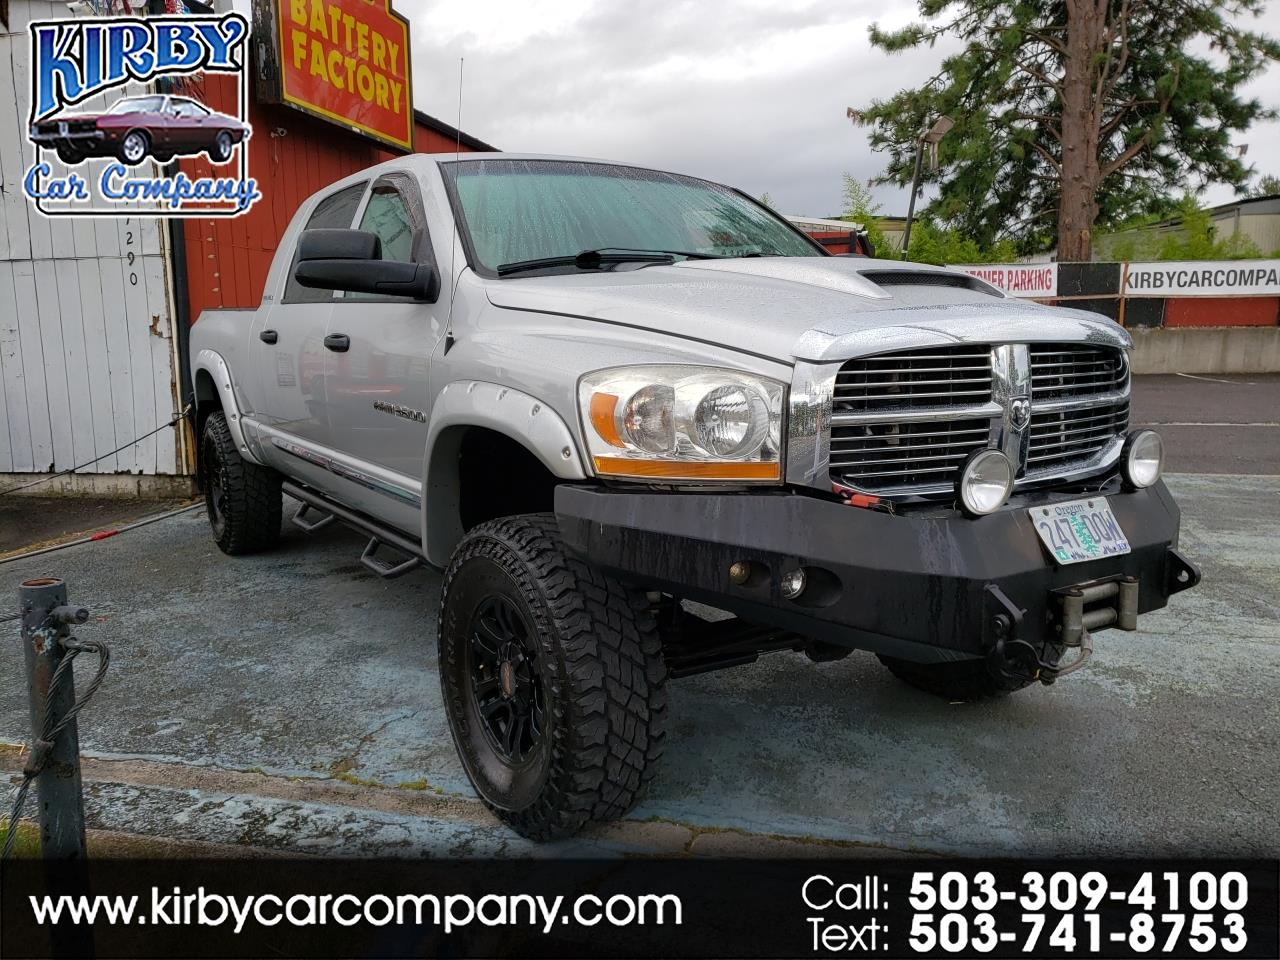 2006 Dodge Ram 3500 Laramie Mega Cab 4WD Diesel LIFTED  CHIPPED  37's!